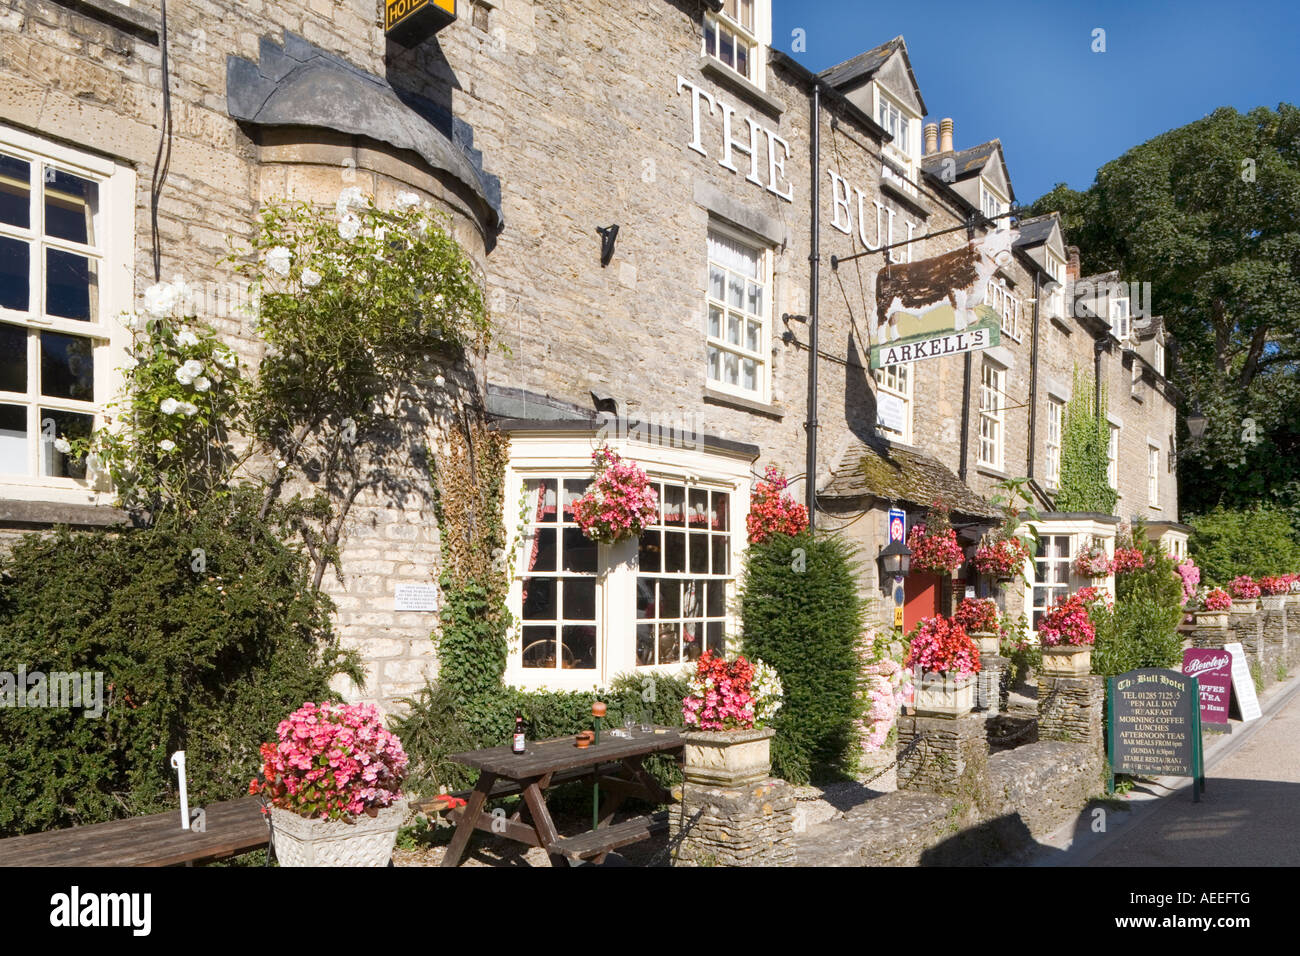 The Bull Hotel in the Cotswold town of Fairford, Gloucestershire - Stock Image